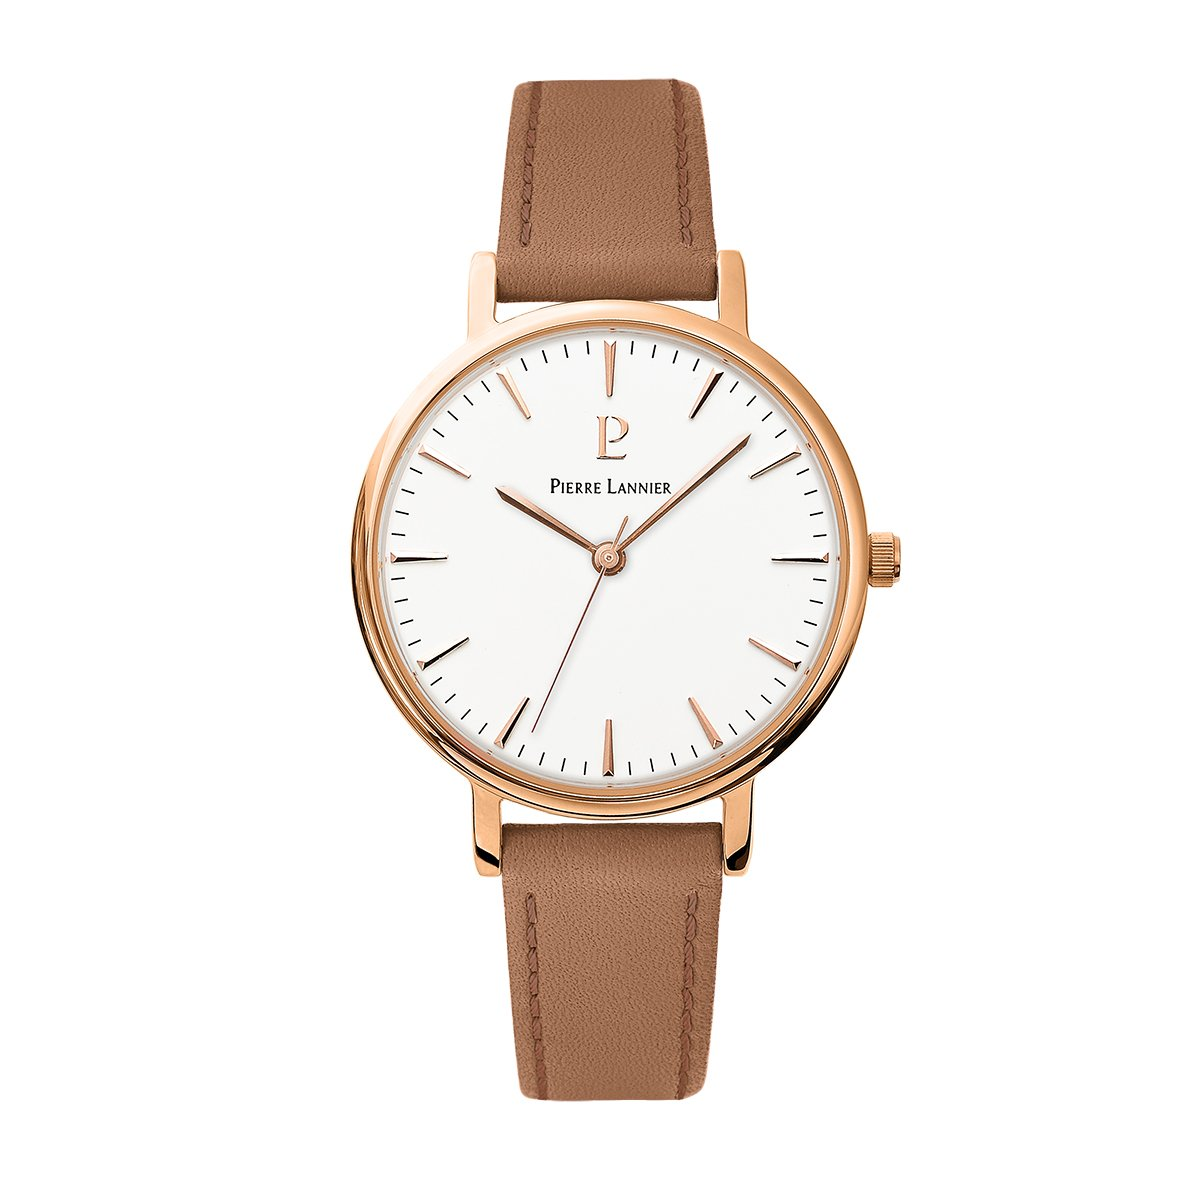 Women's Watch Pierre Lannier - 090G914 - WEEK-END SYMPHONY - Deep Brown and Rose Gold - Leather Band